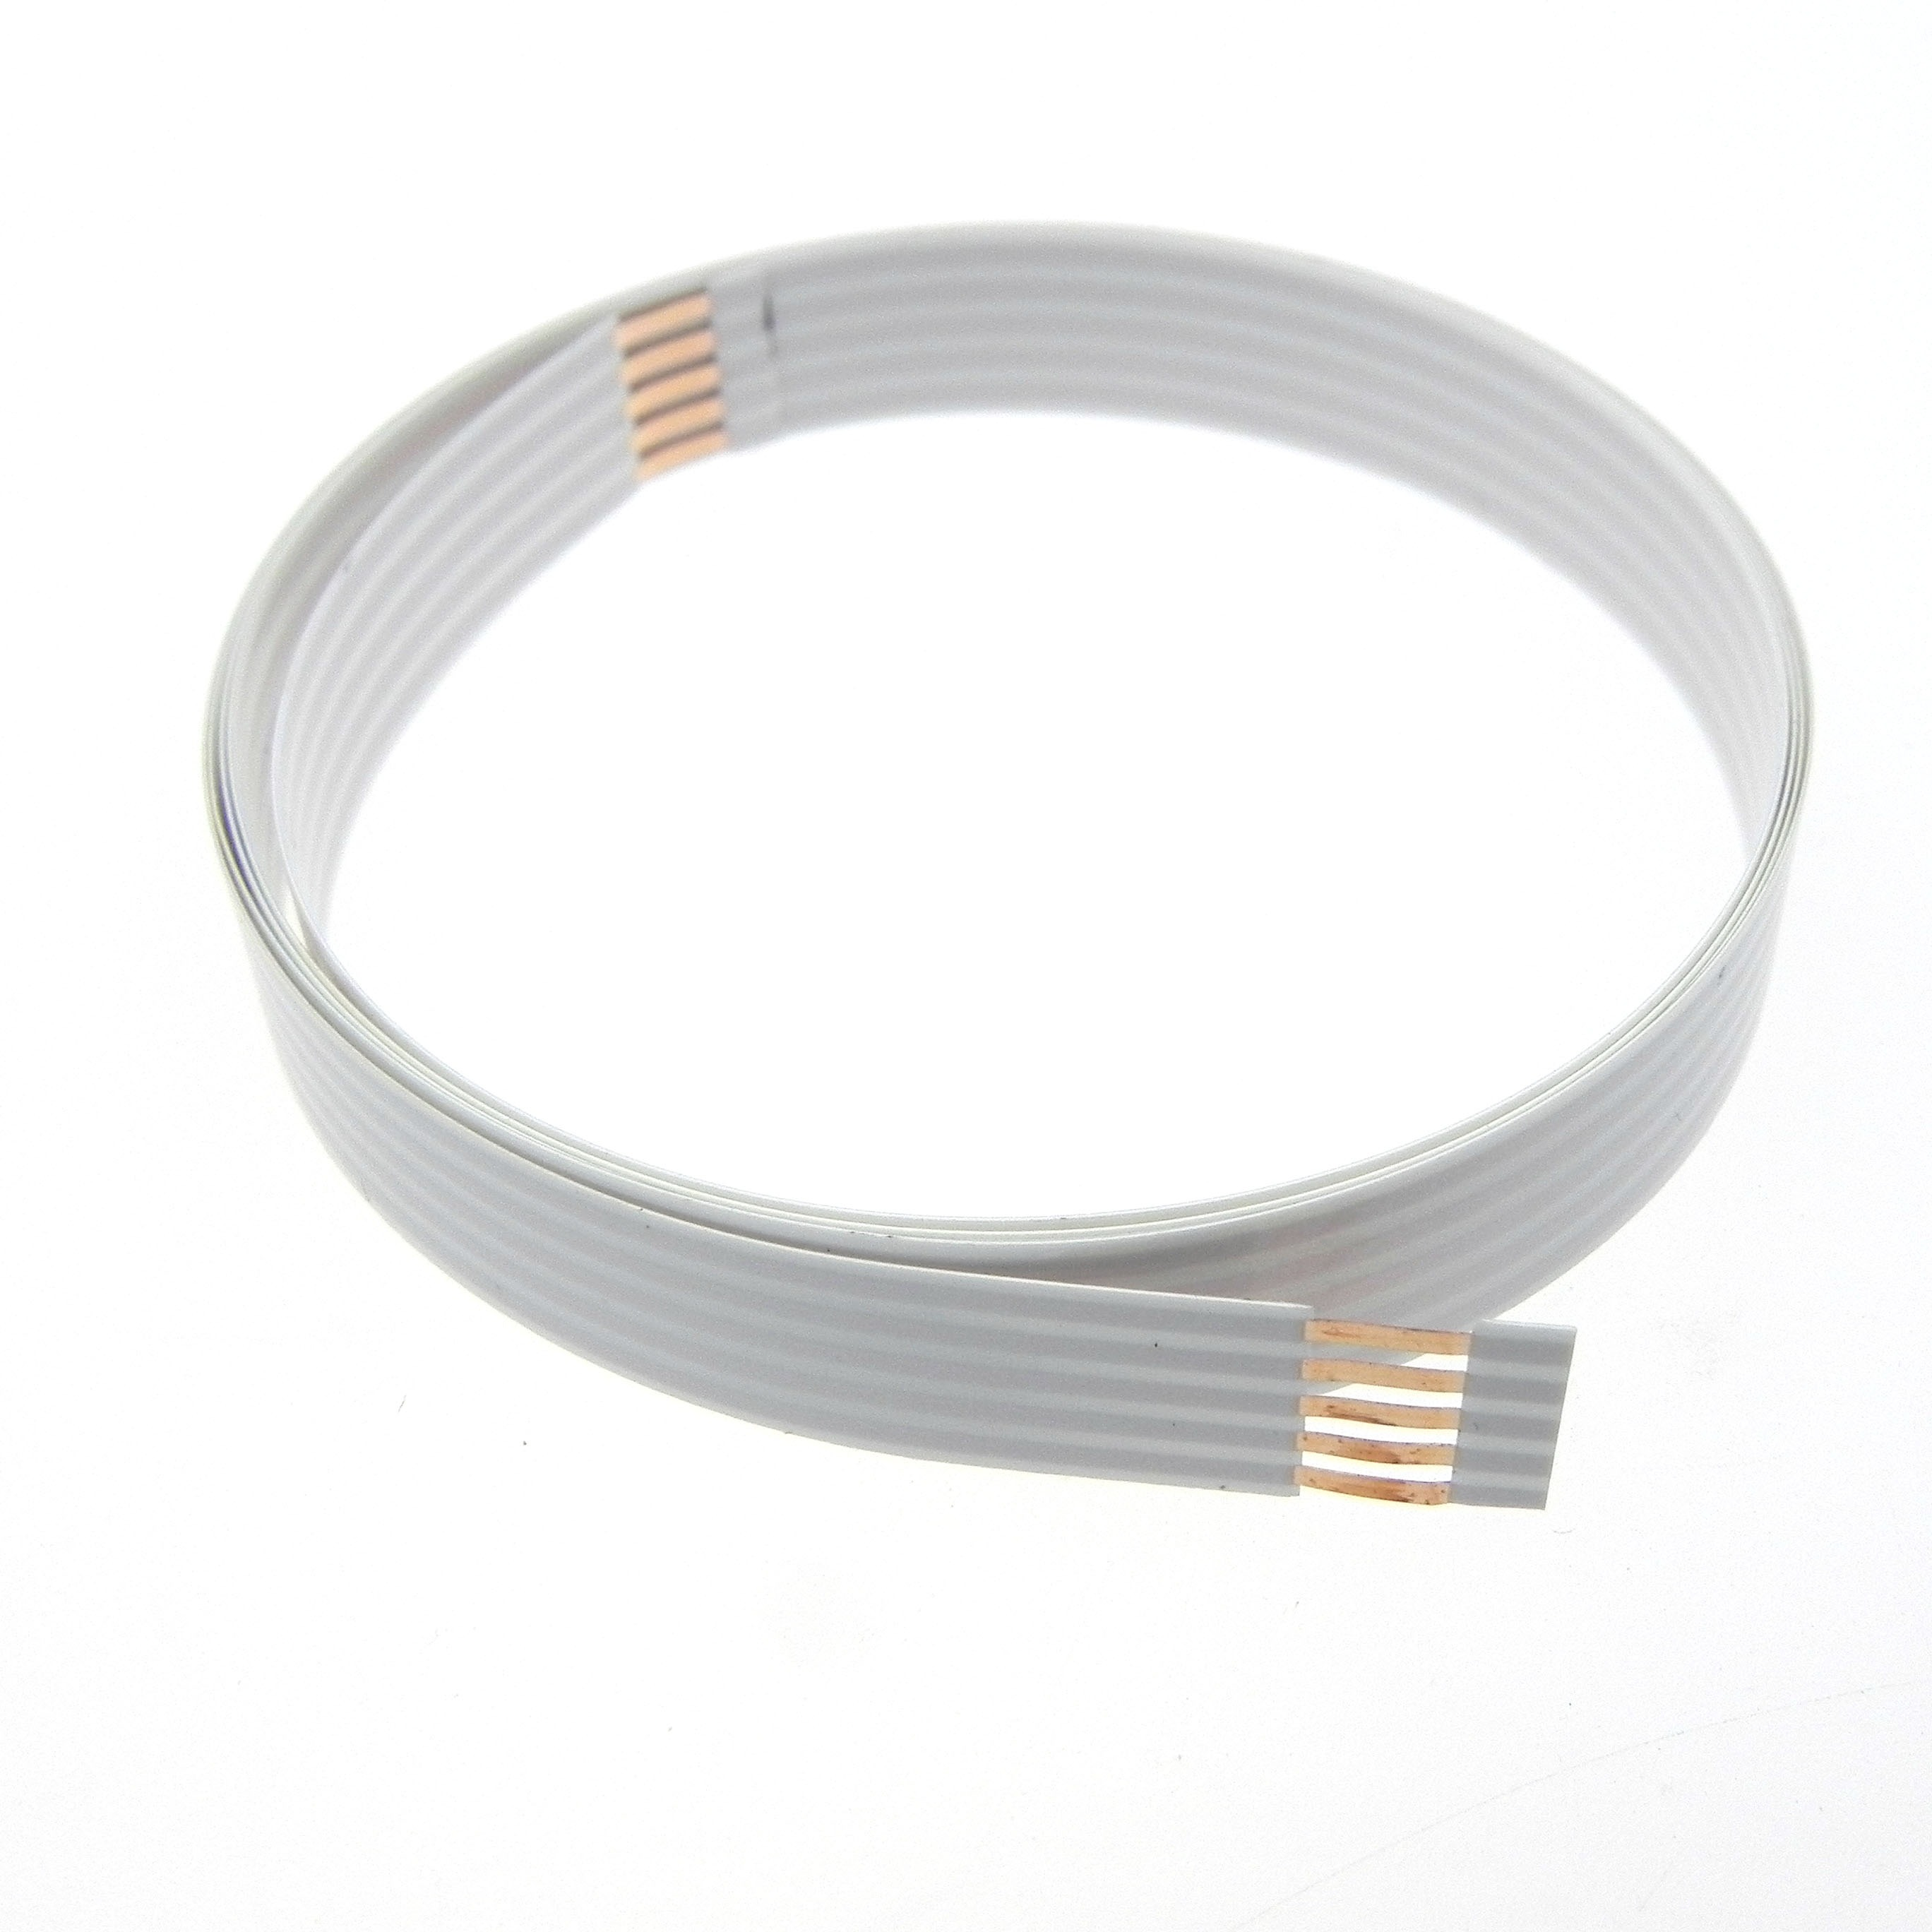 5pin 1.4mm 660mm long airbag flat cable